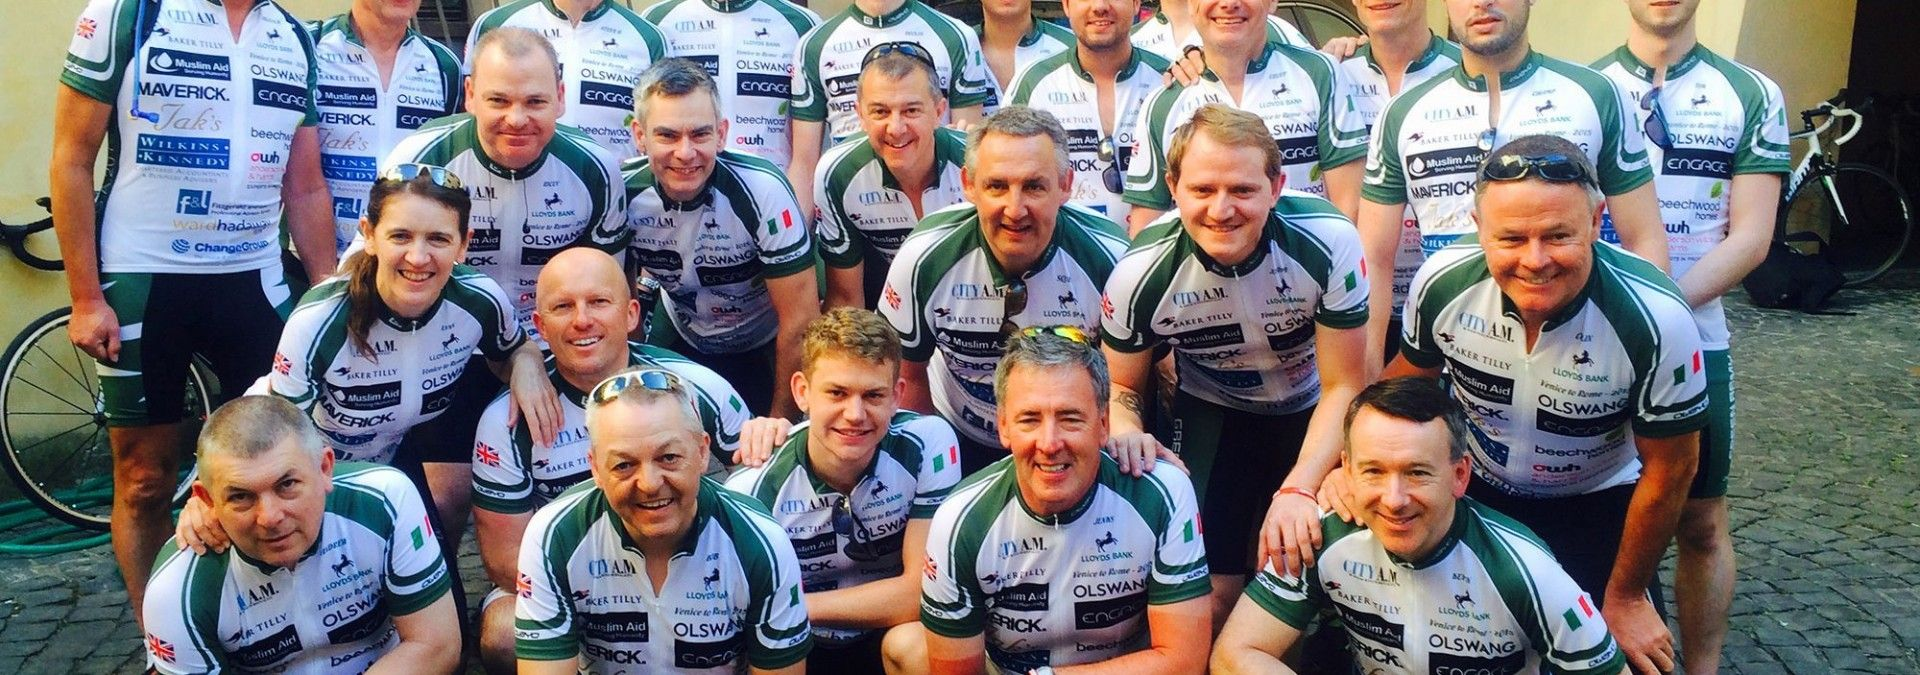 Fundraising cyclists on Venice to Rome cycle